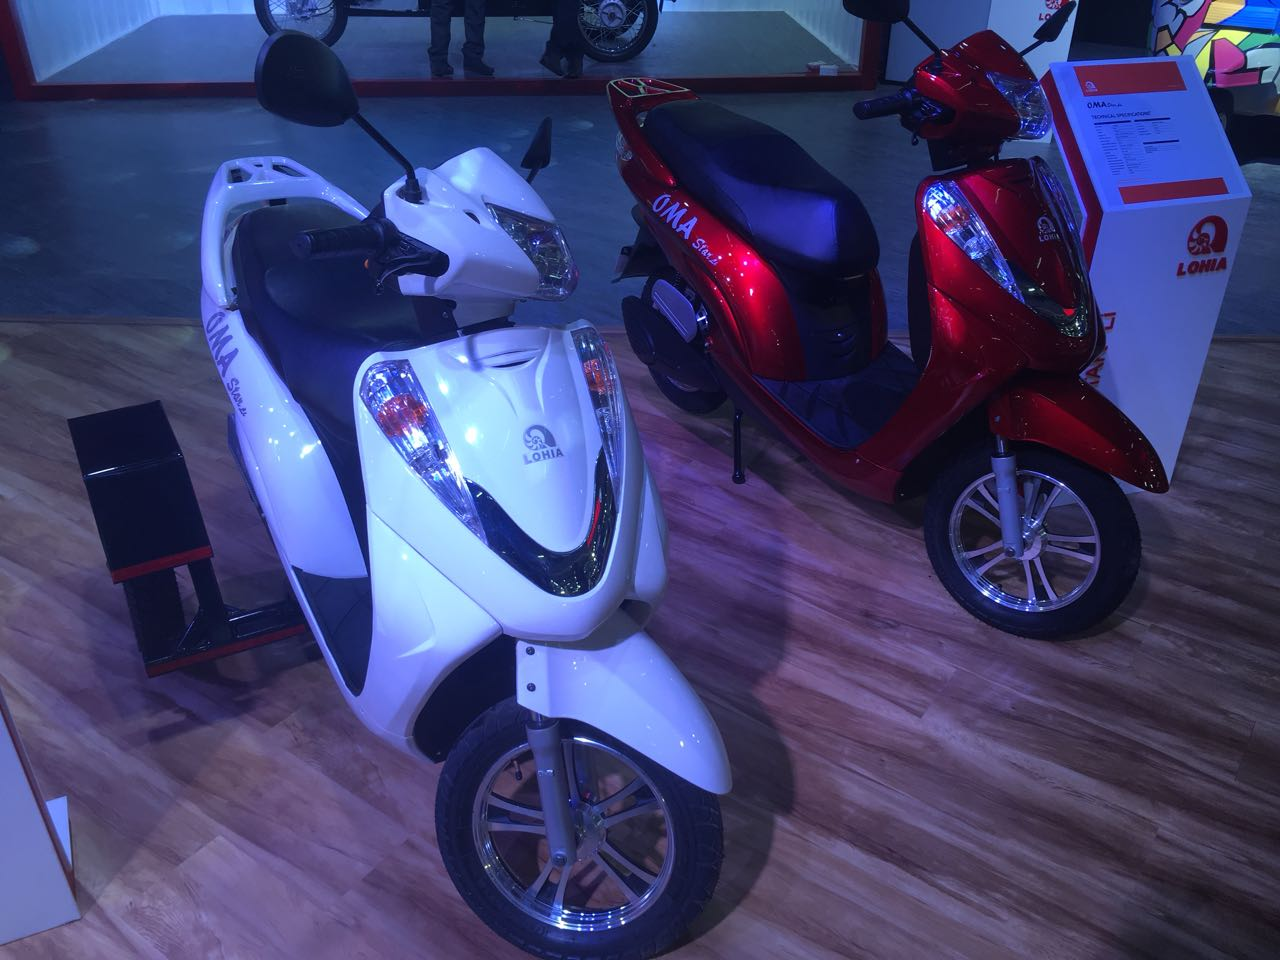 <p>Lohia Electric Scooters at Hall no. 6</p>